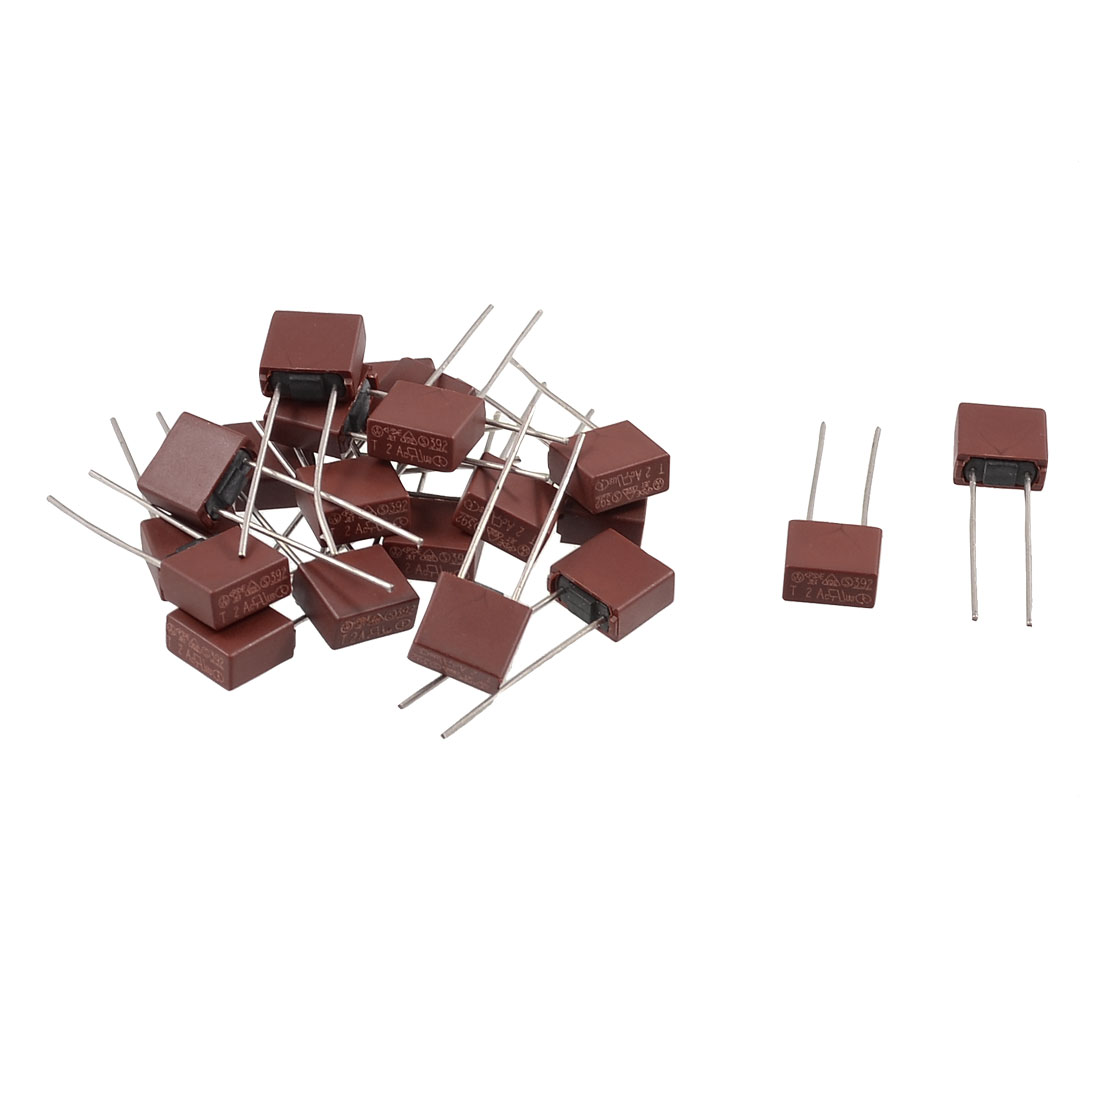 20 x Square Type Radial Leads Miniature Slow Blow Micro Fuse T500mA 250V